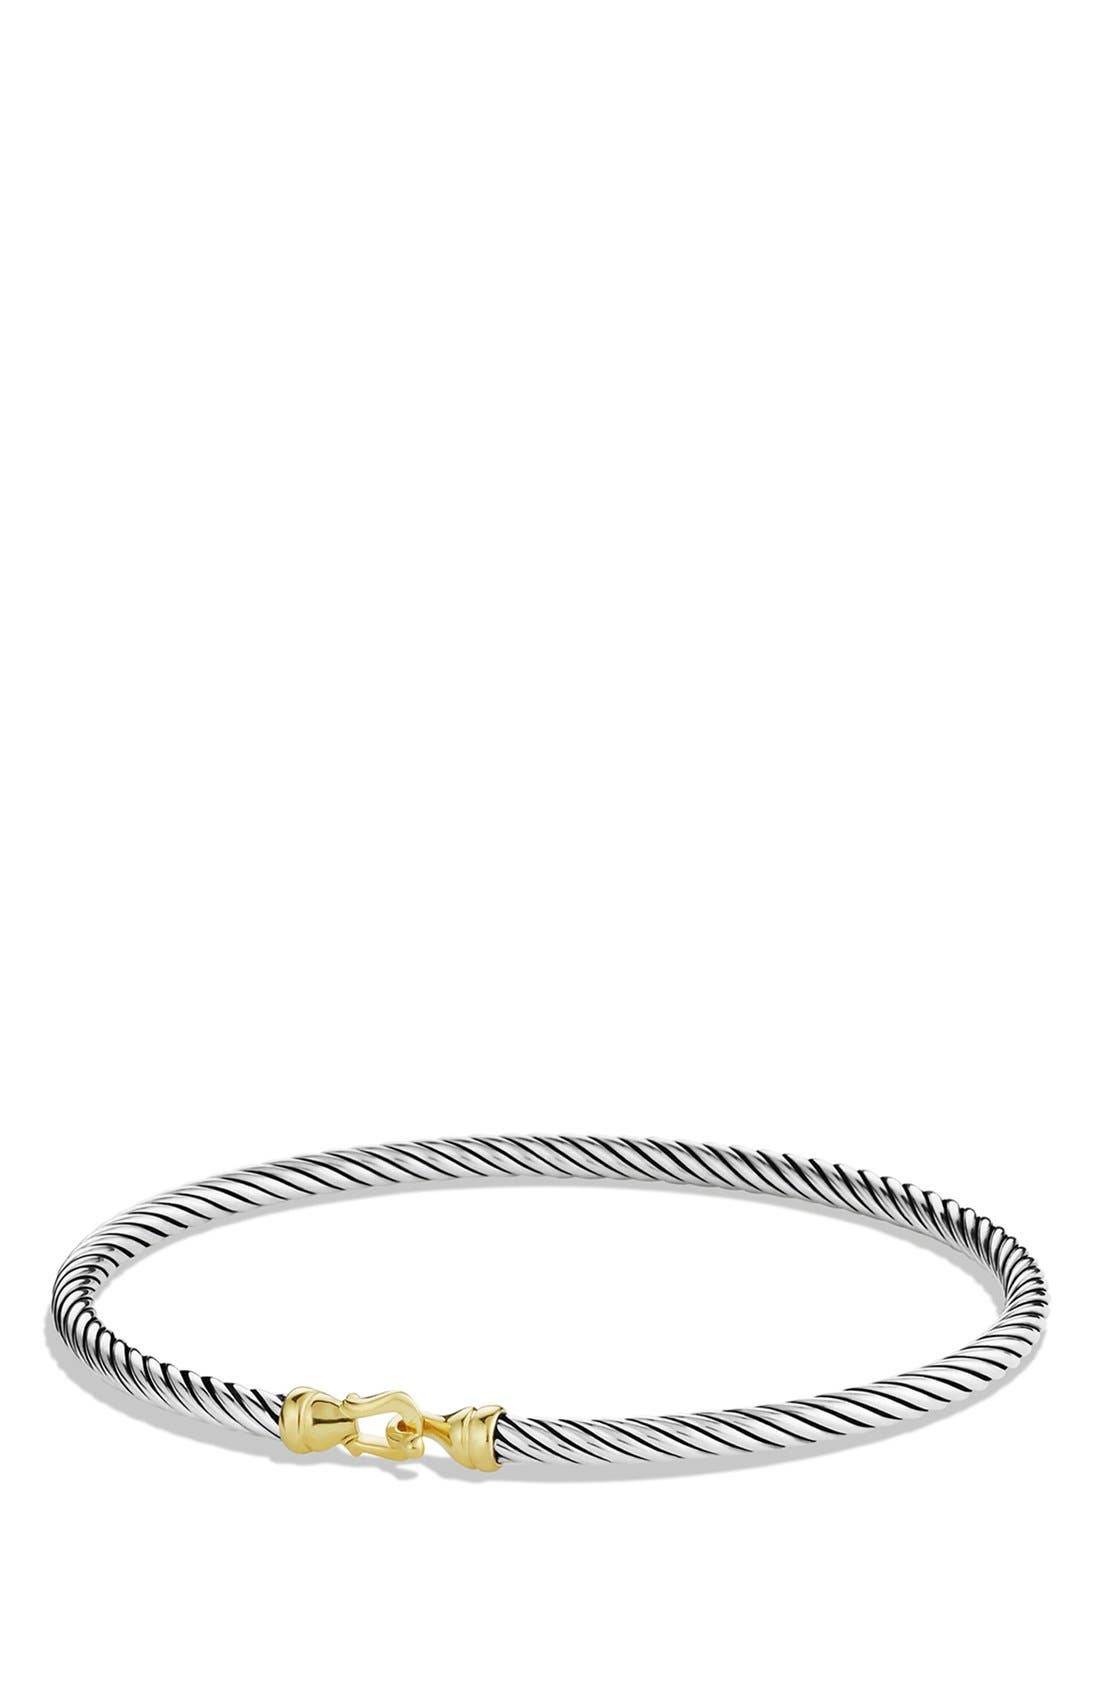 Main Image - David Yurman 'Cable Buckle' Two-Tone Bracelet